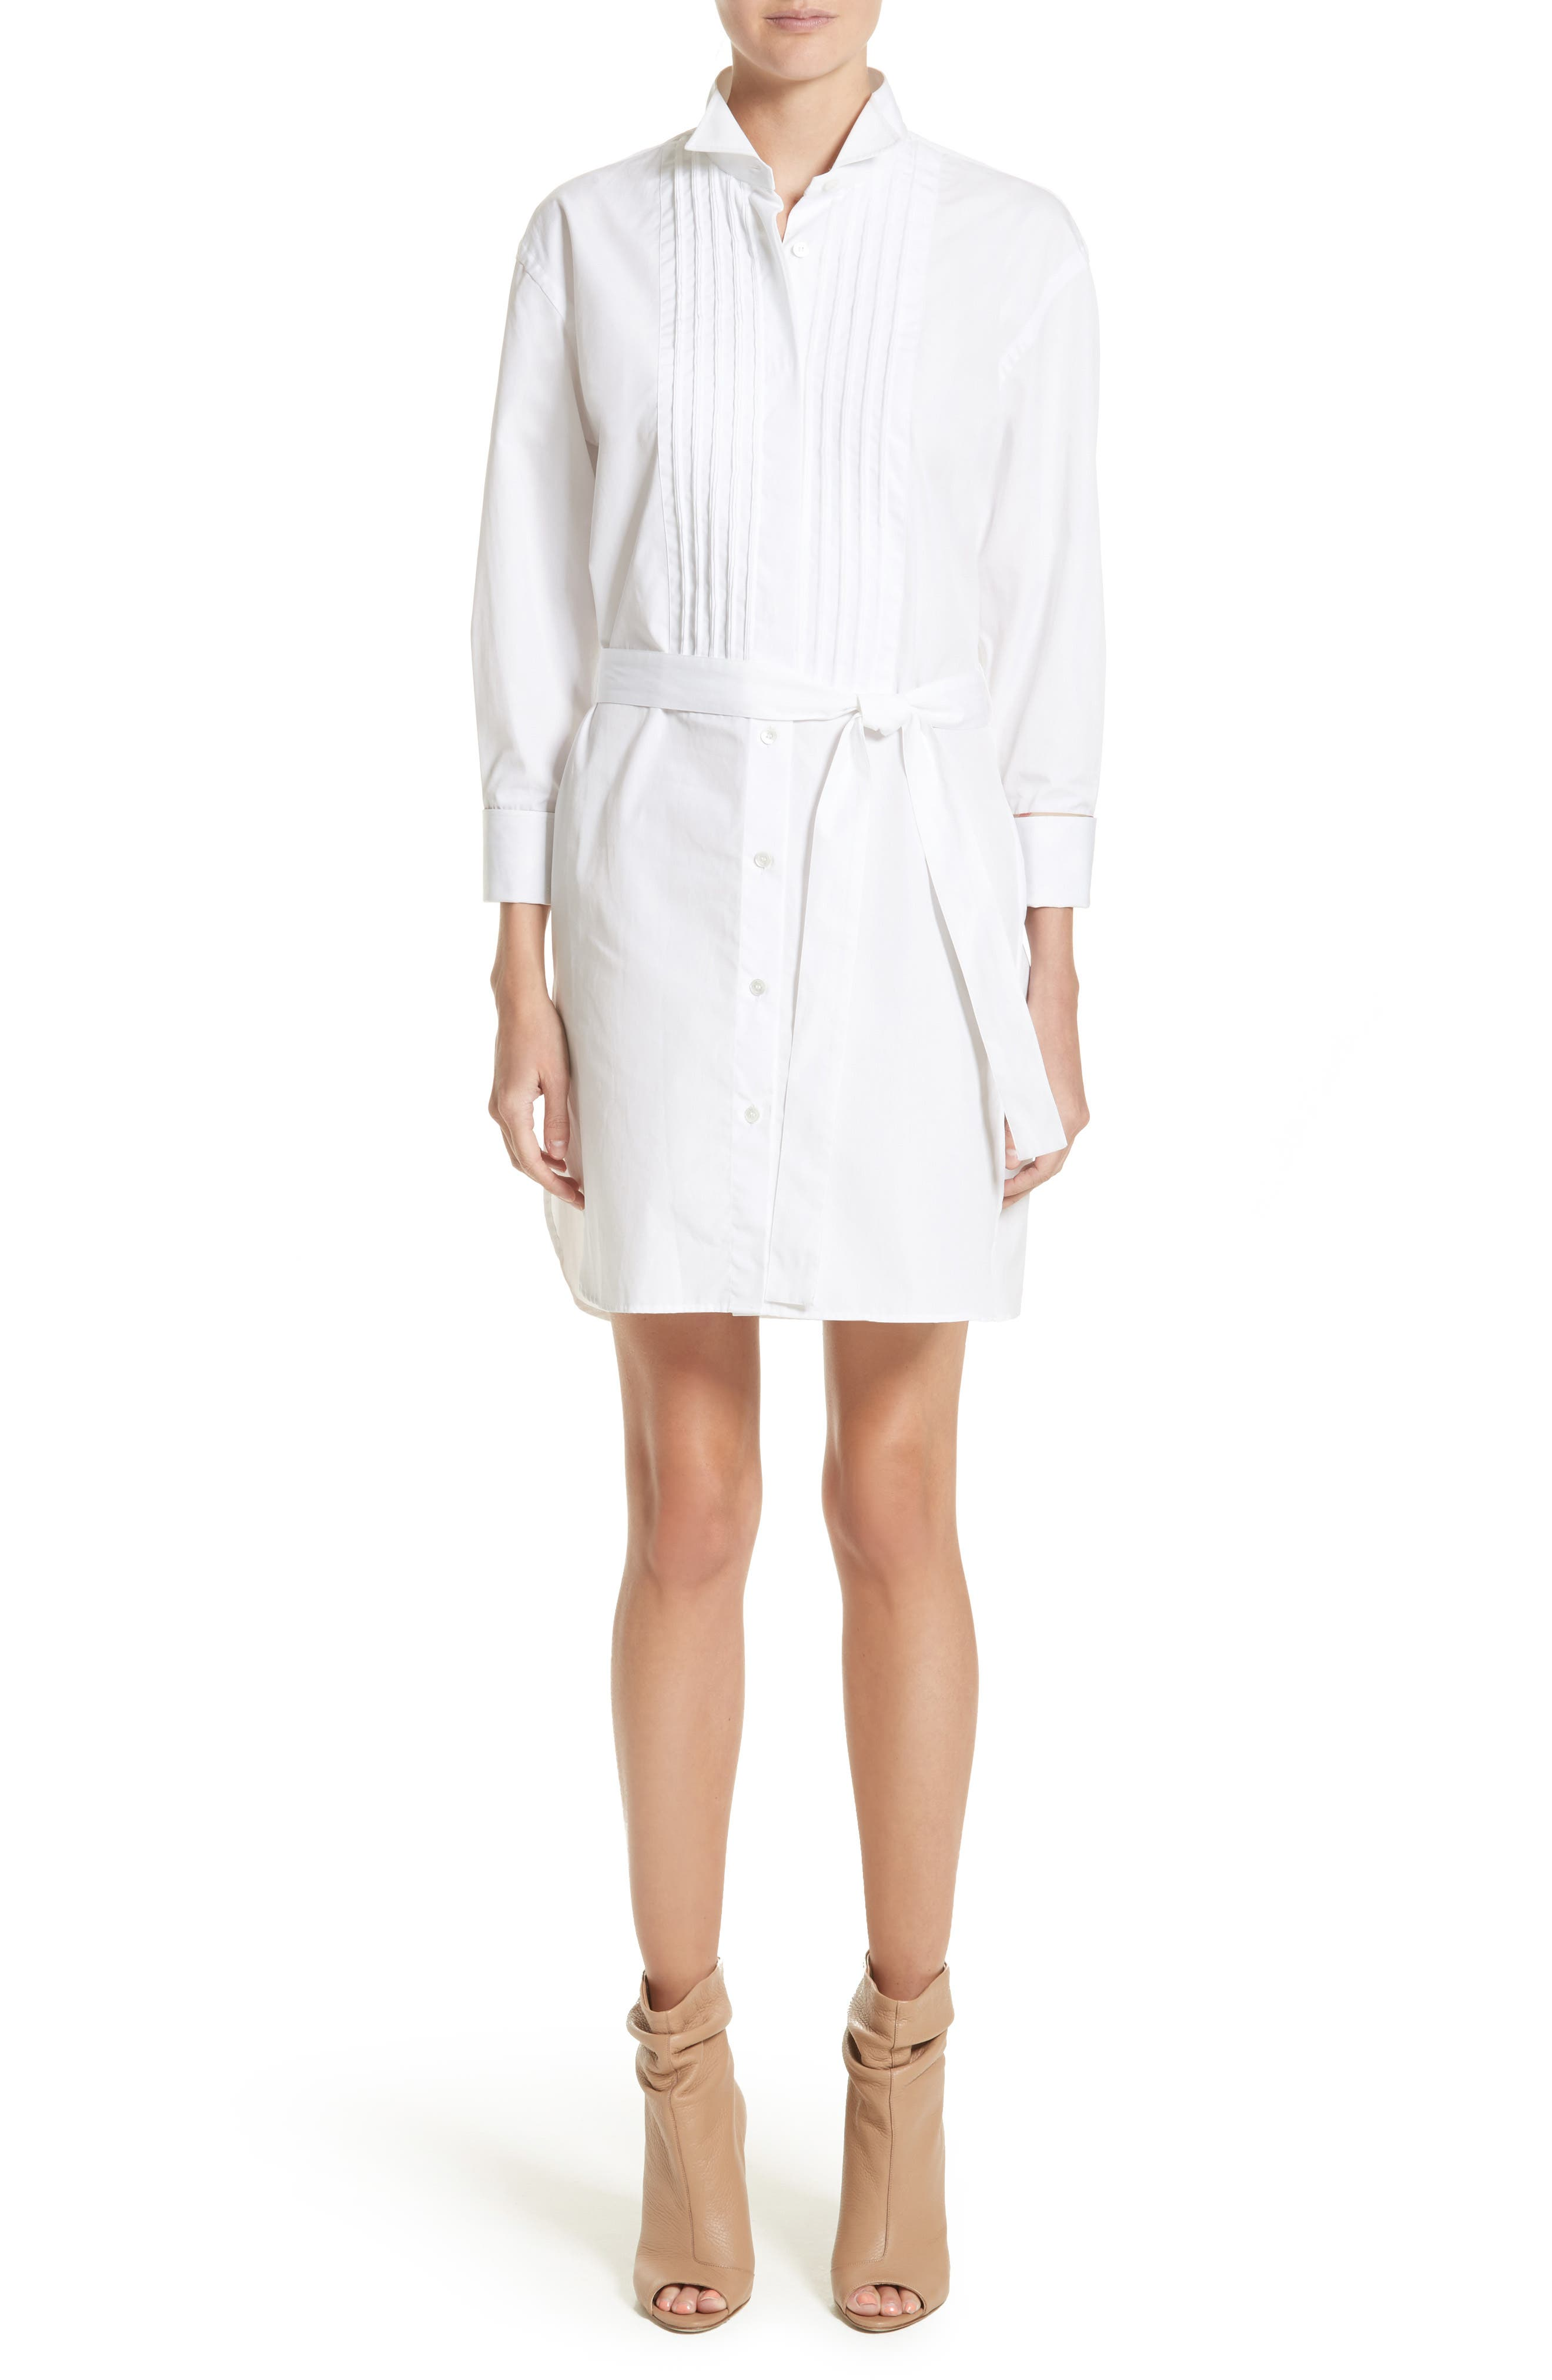 Alternate Image 1 Selected - Burberry Madeline Cotton Poplin Shirtdress